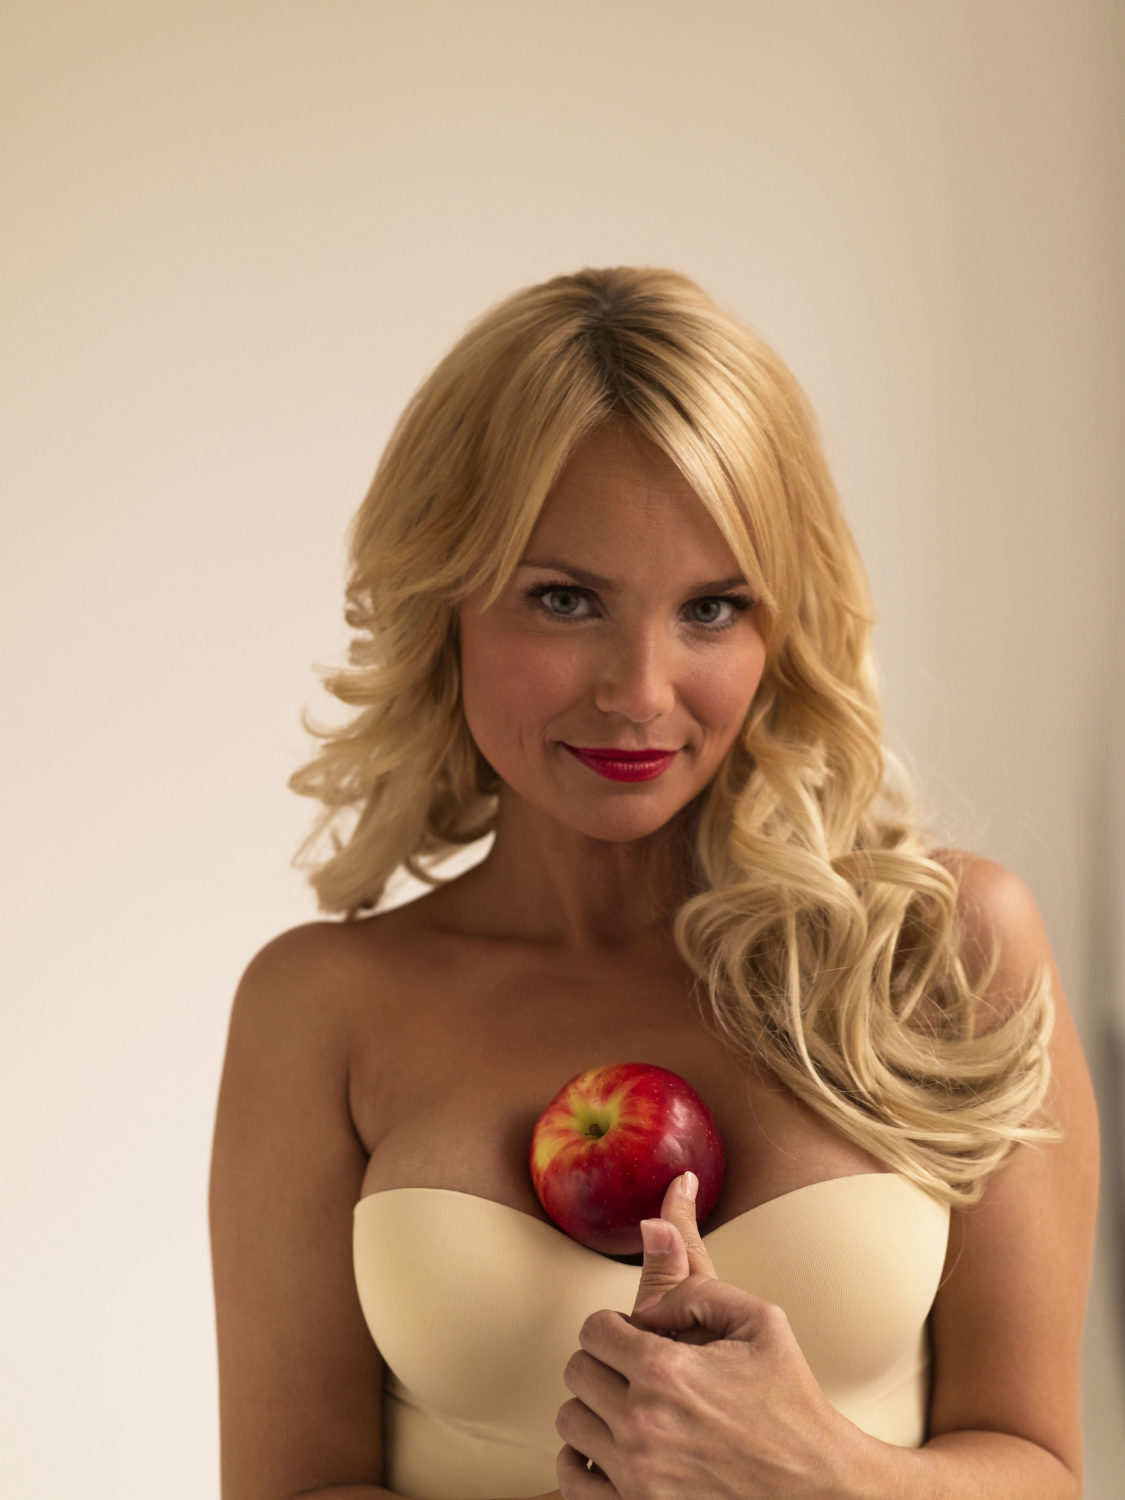 Happy Birthday To Kristin Chenoweth! - TOTPI Tobey Maguire Facebook